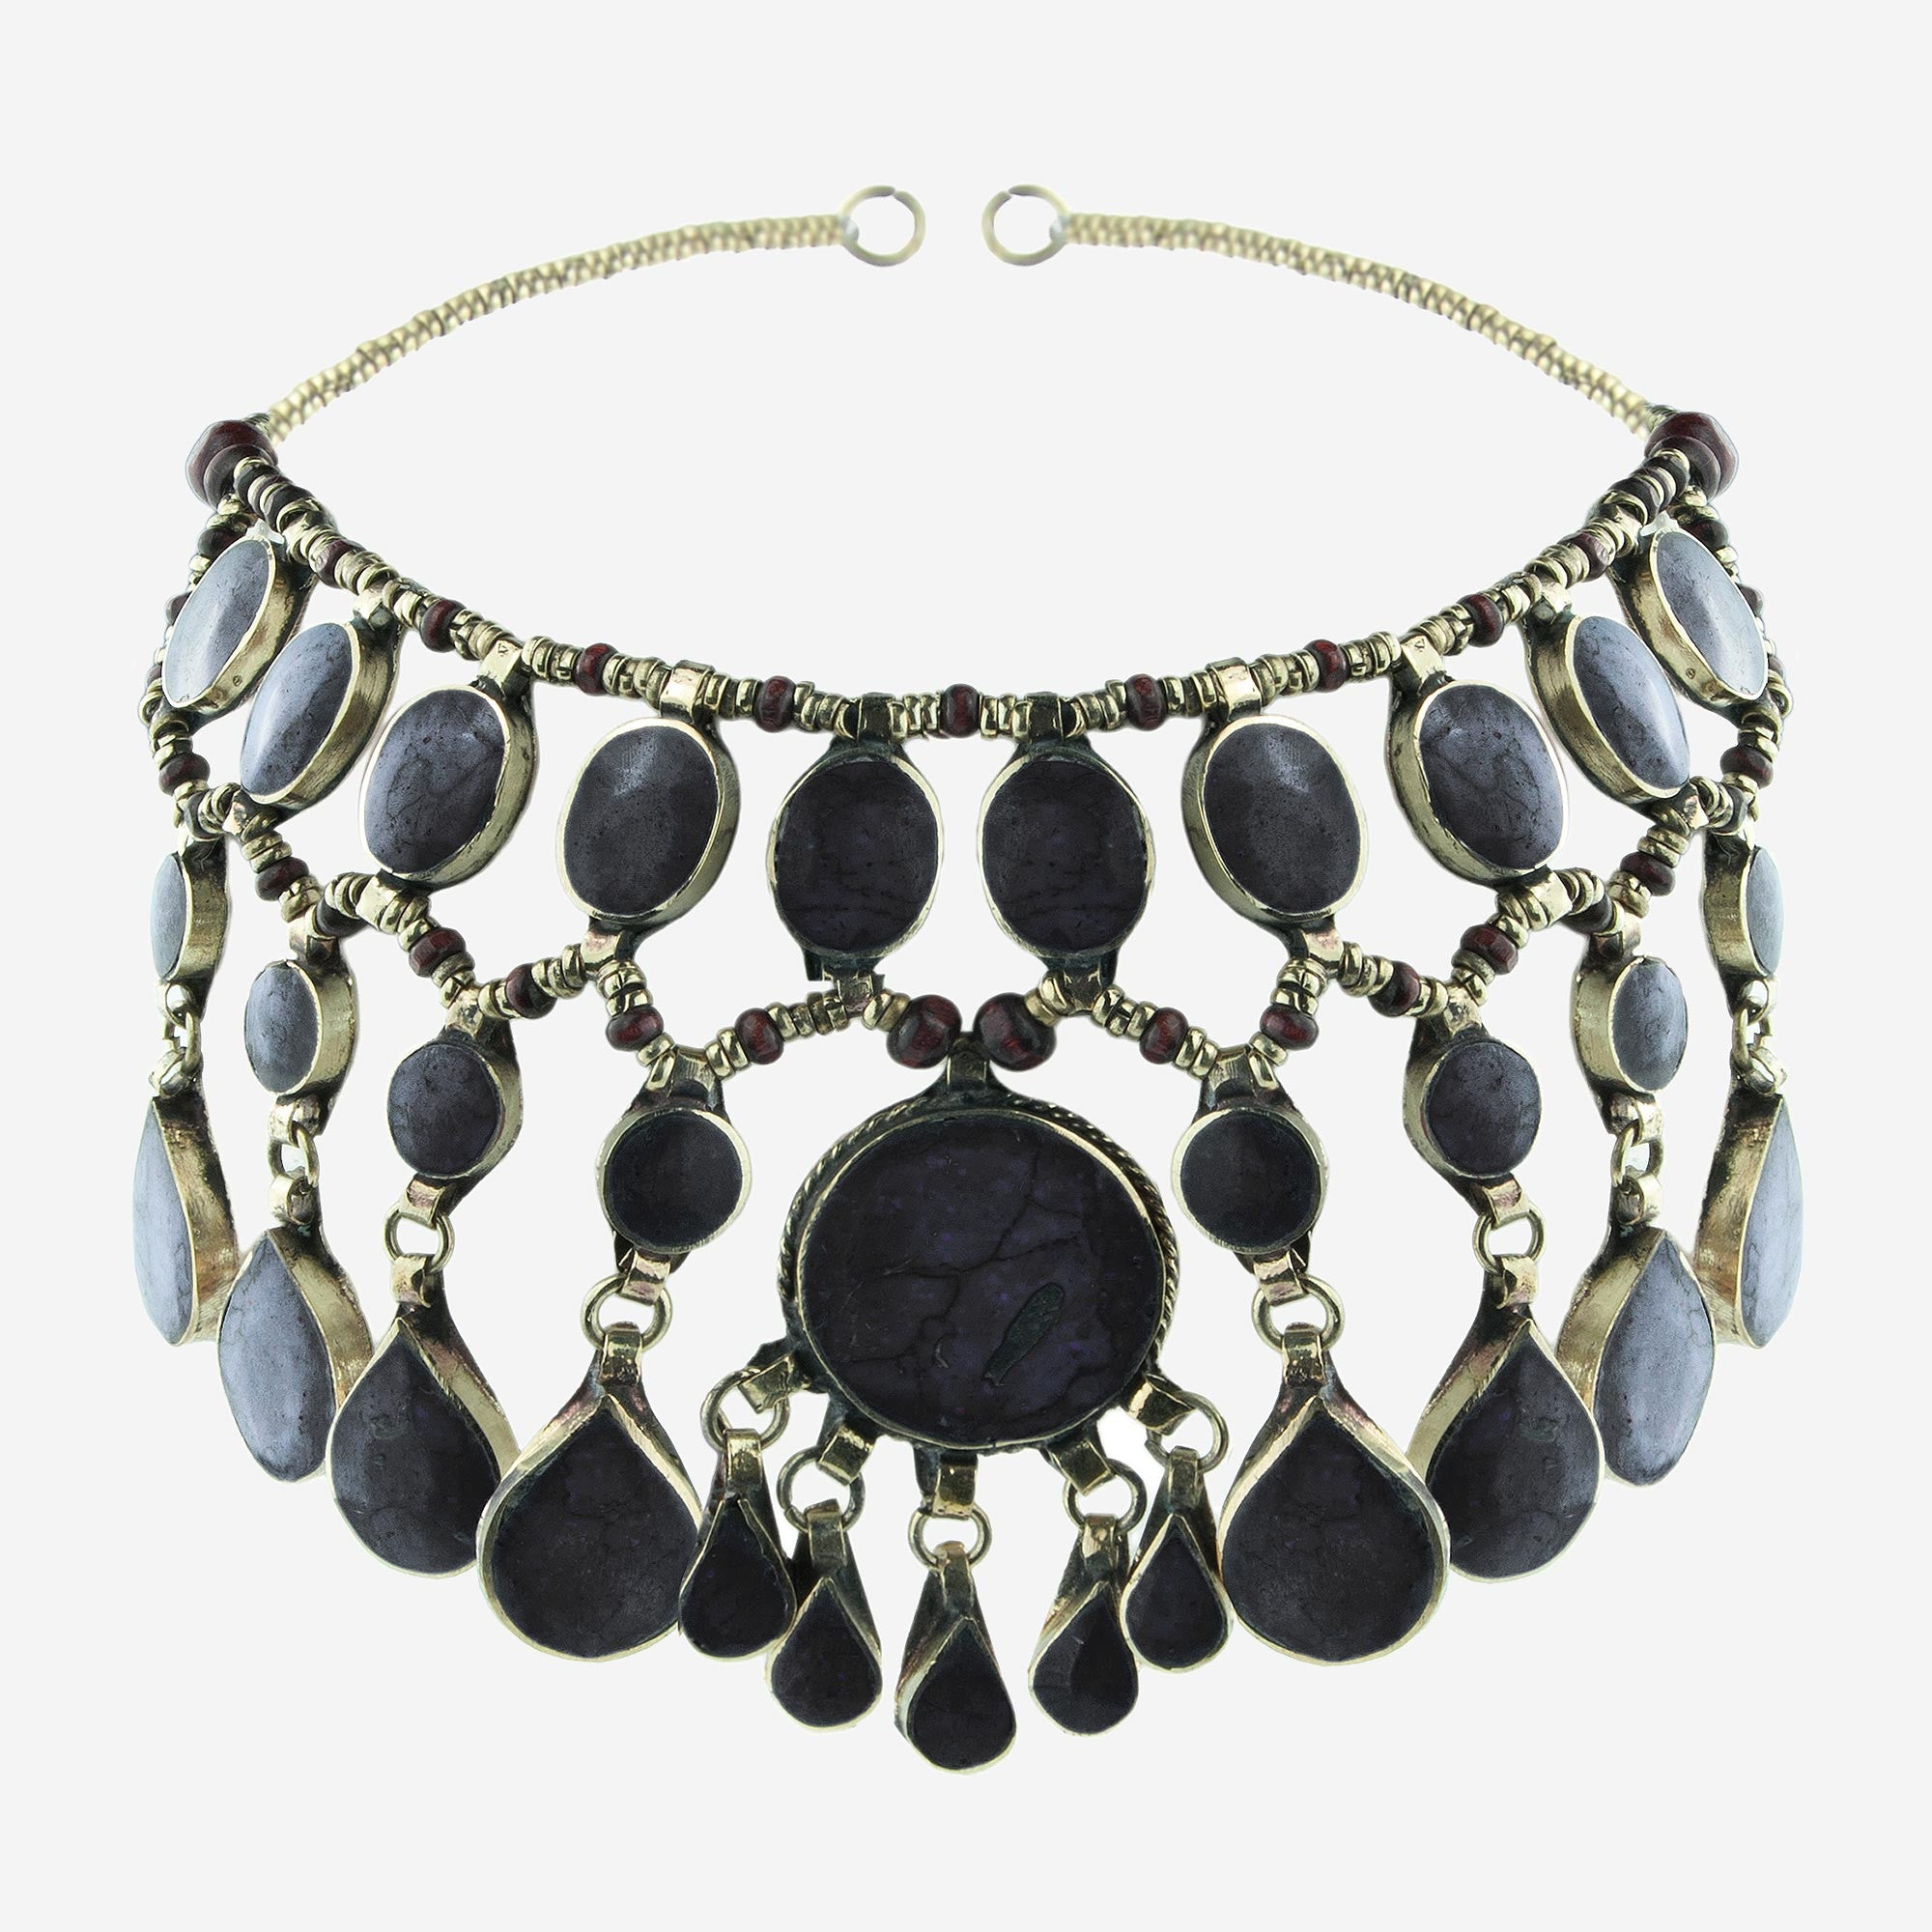 Image of EVANGELINE Black Jade Gemstone Headdress